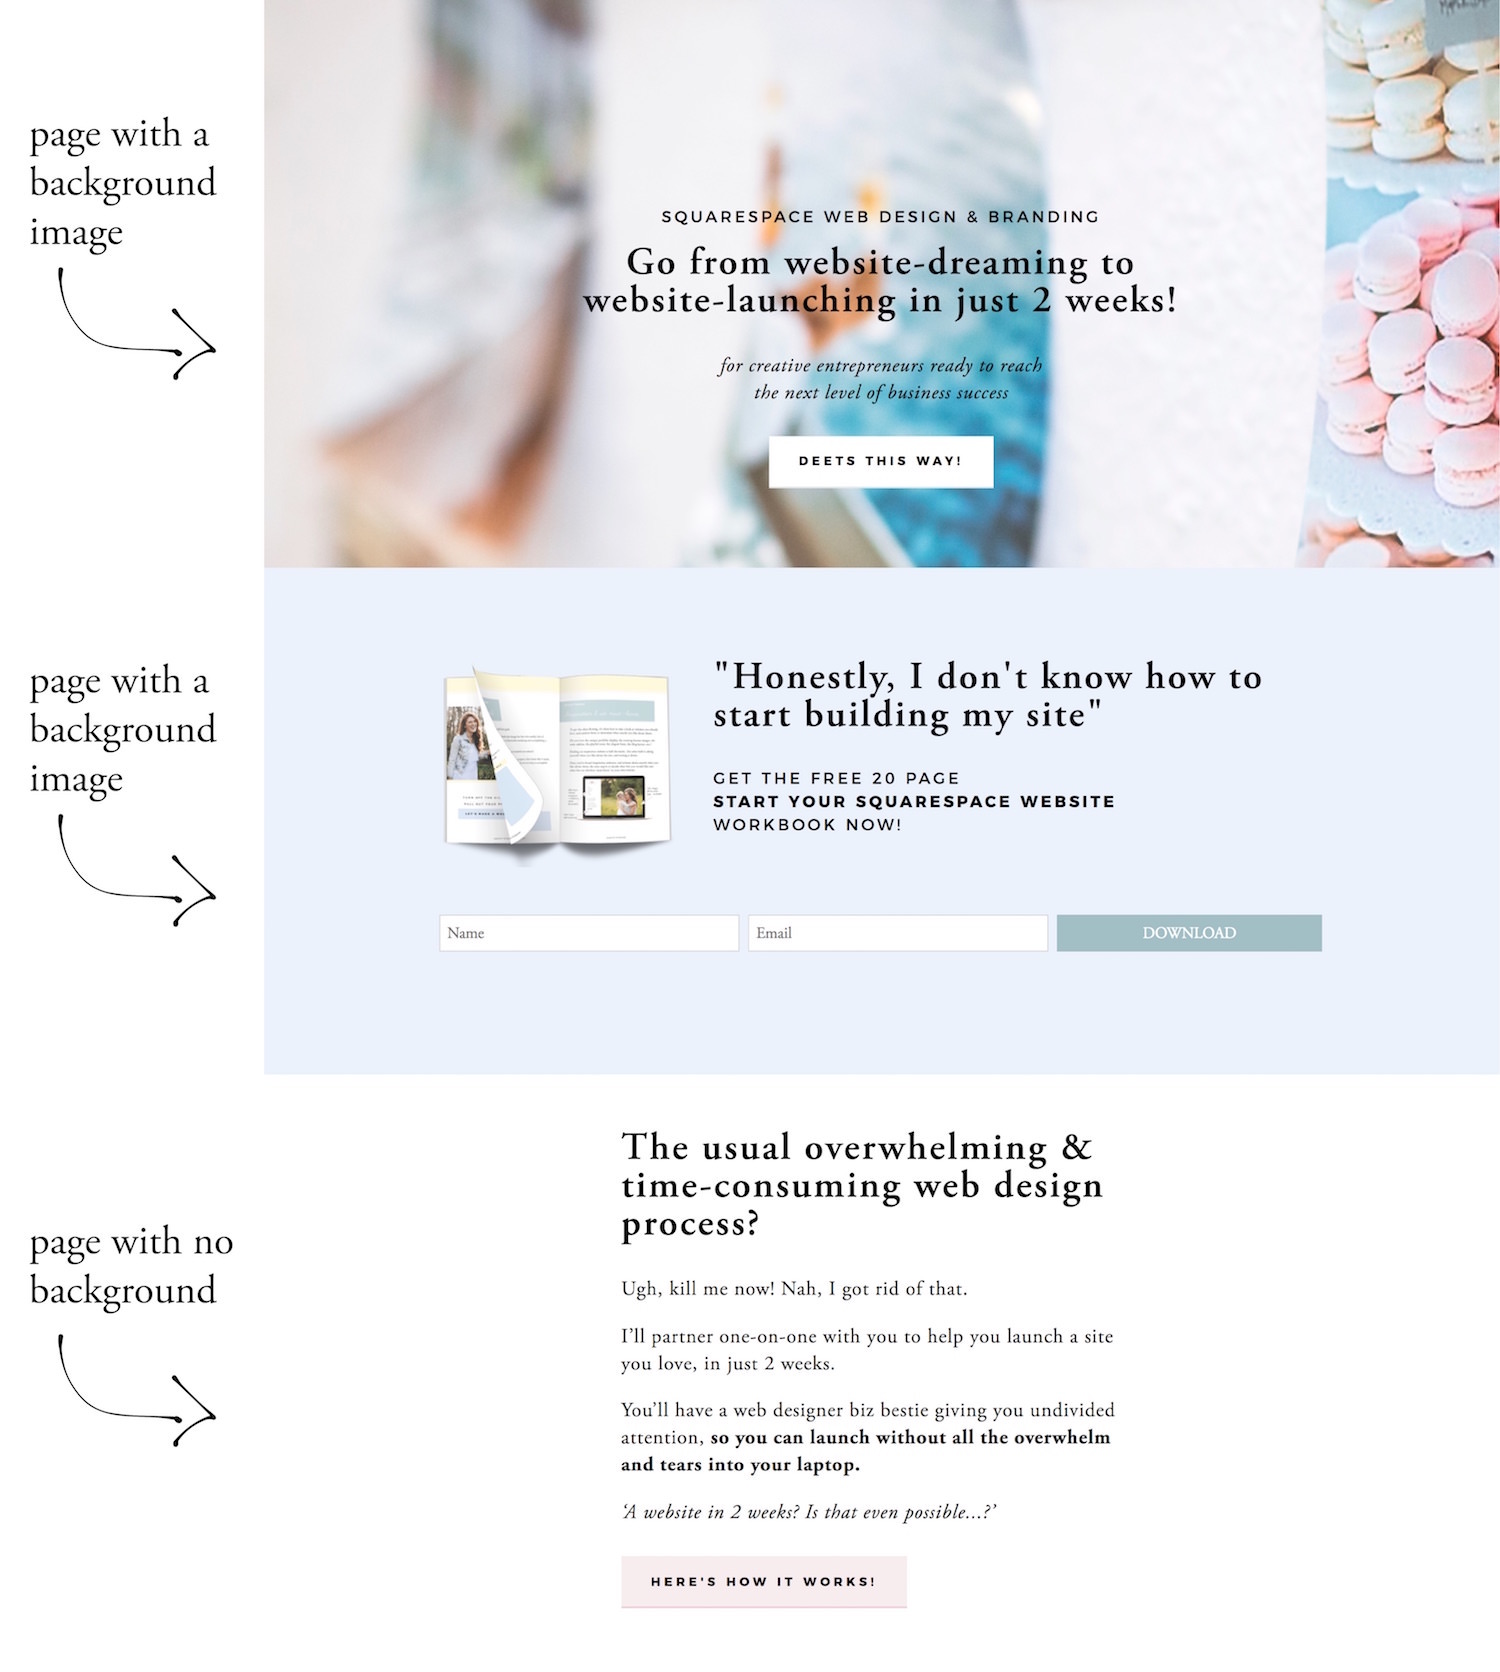 changing the background color of a section or individual page in Squarespace.jpg